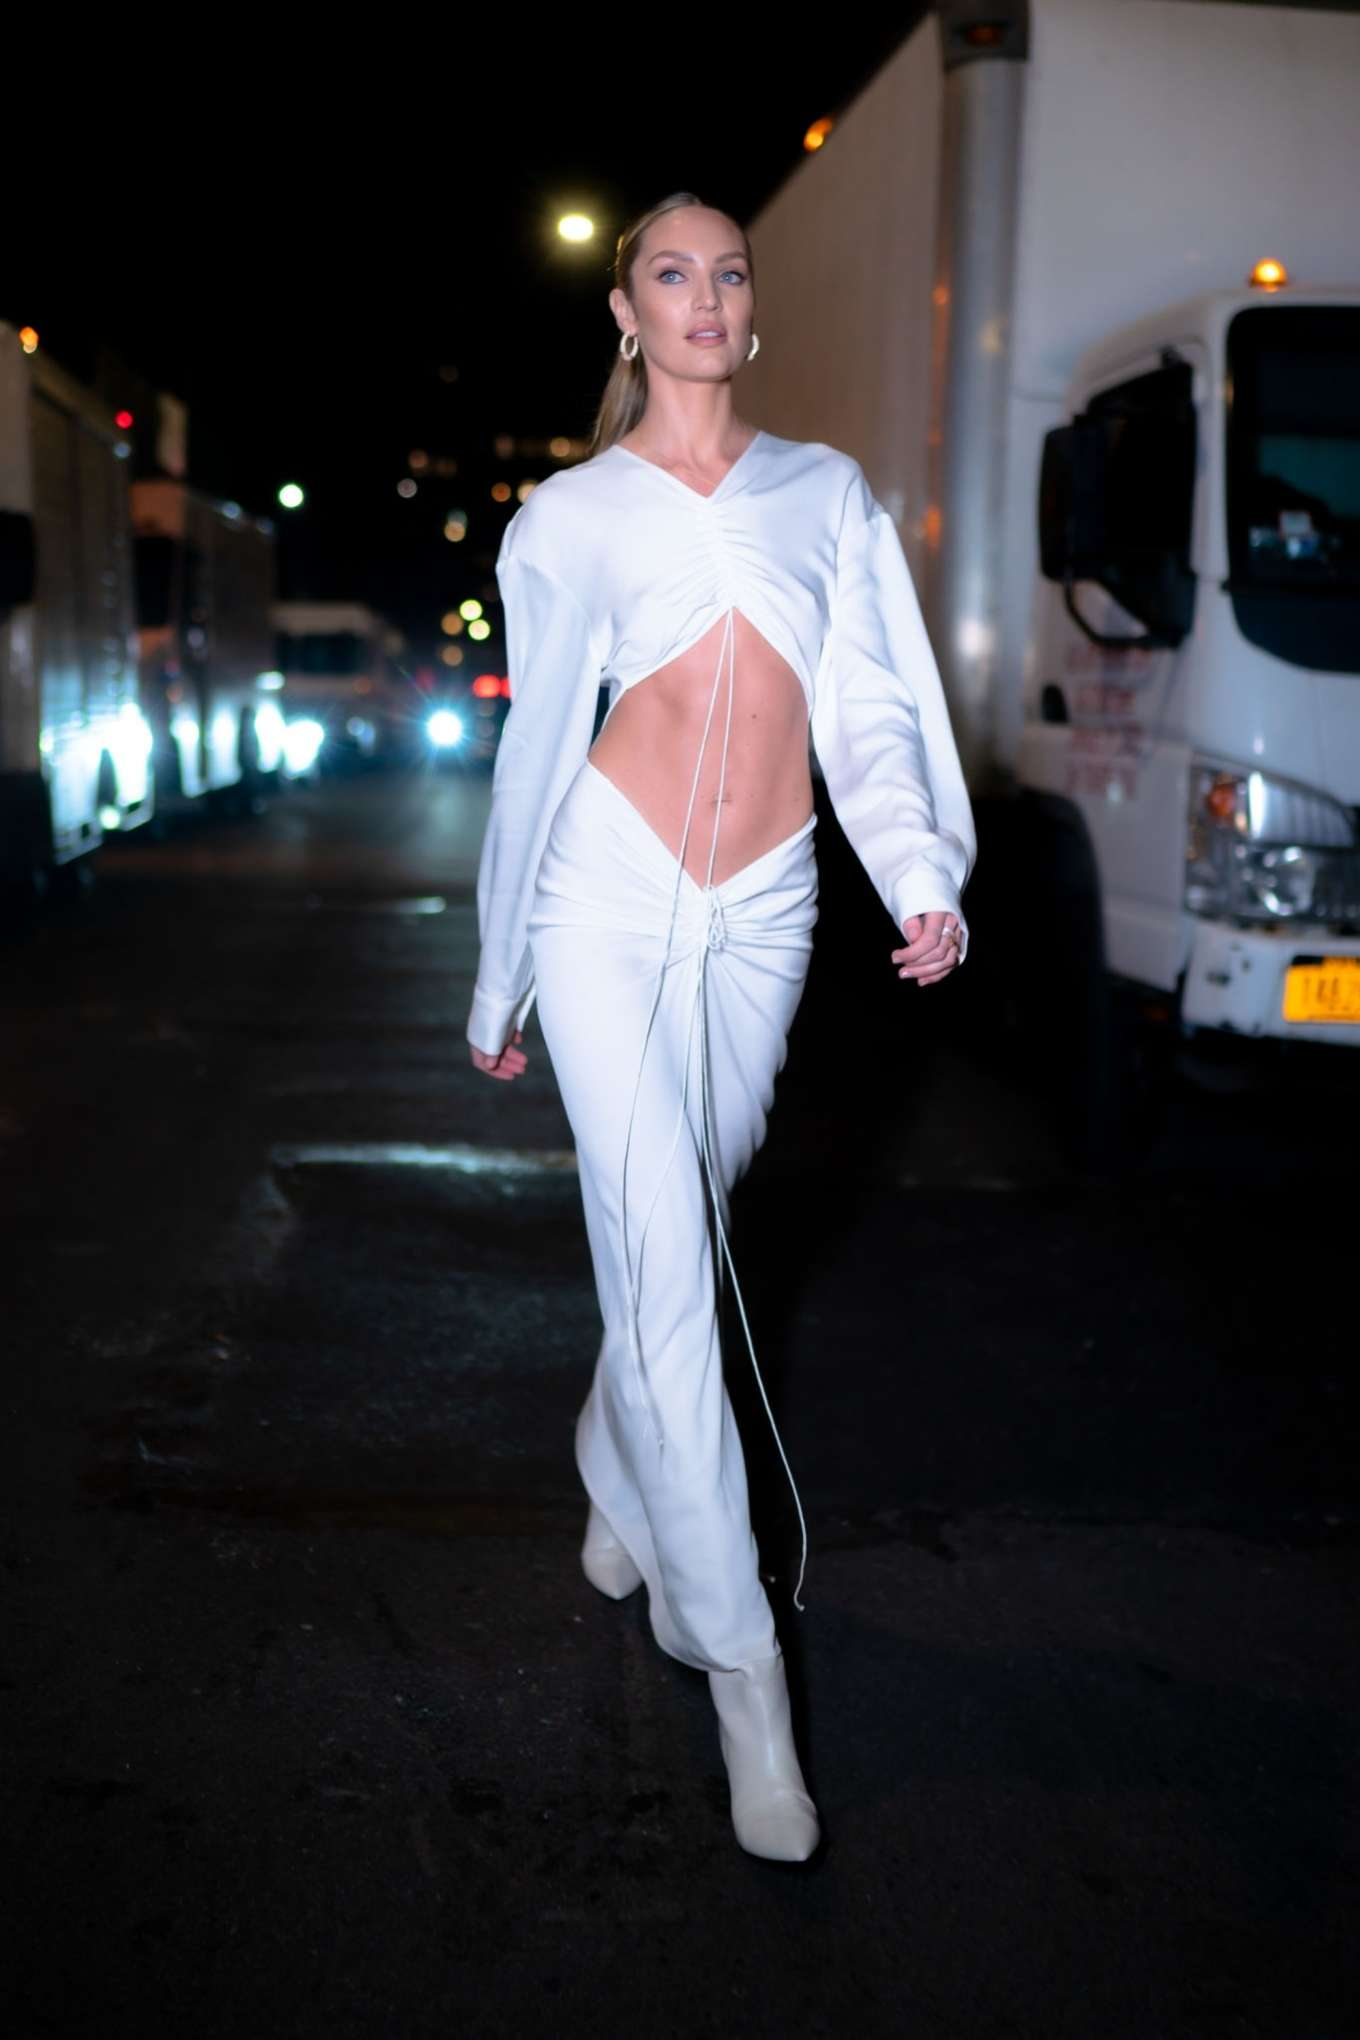 Candice Swanepoel 2019 : Candice Swanepoel in White Dress – Out in NYC-09